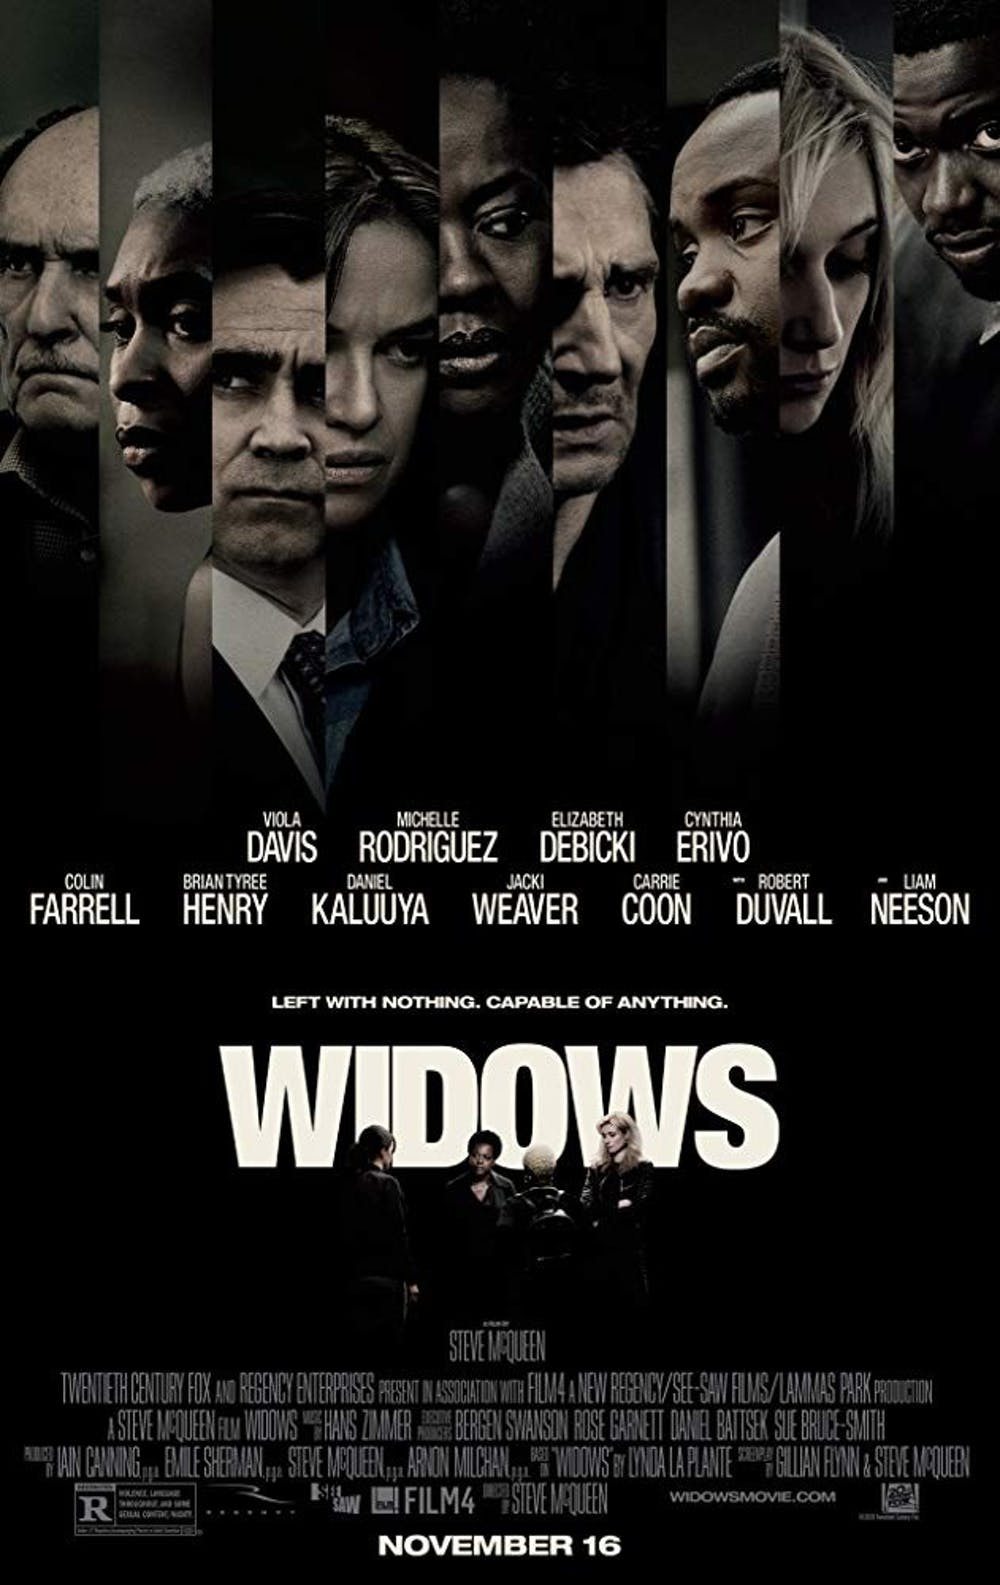 'Widows' remake stuns with a wonderful cast